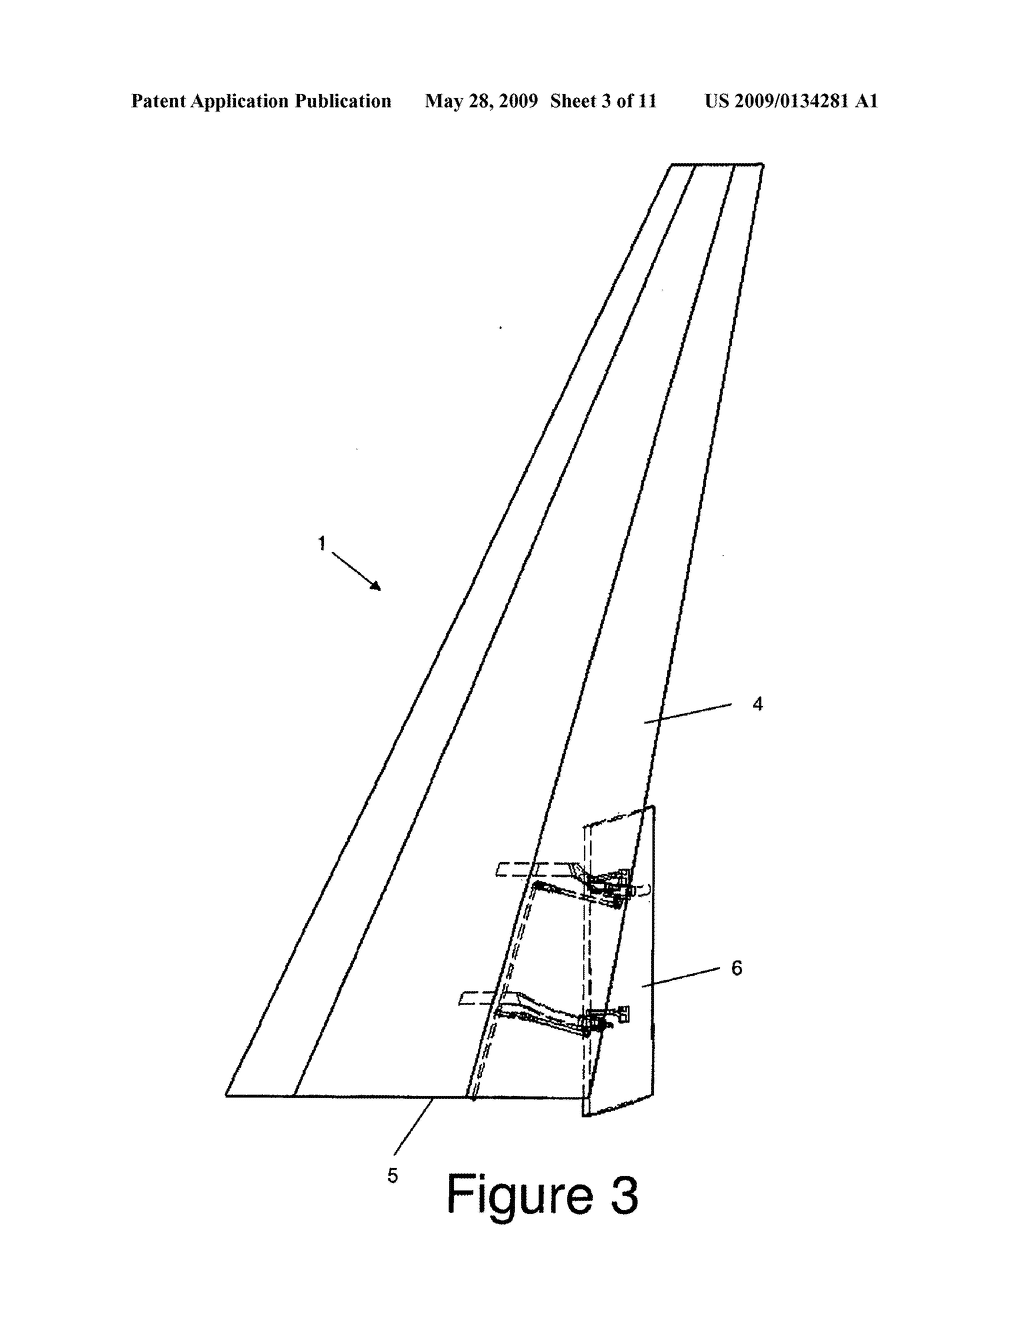 Airplane Flaps Diagram Slats Wire Diagrams Of An And Aircraft Wing Flap Deployment System Schematic Trim Tabs